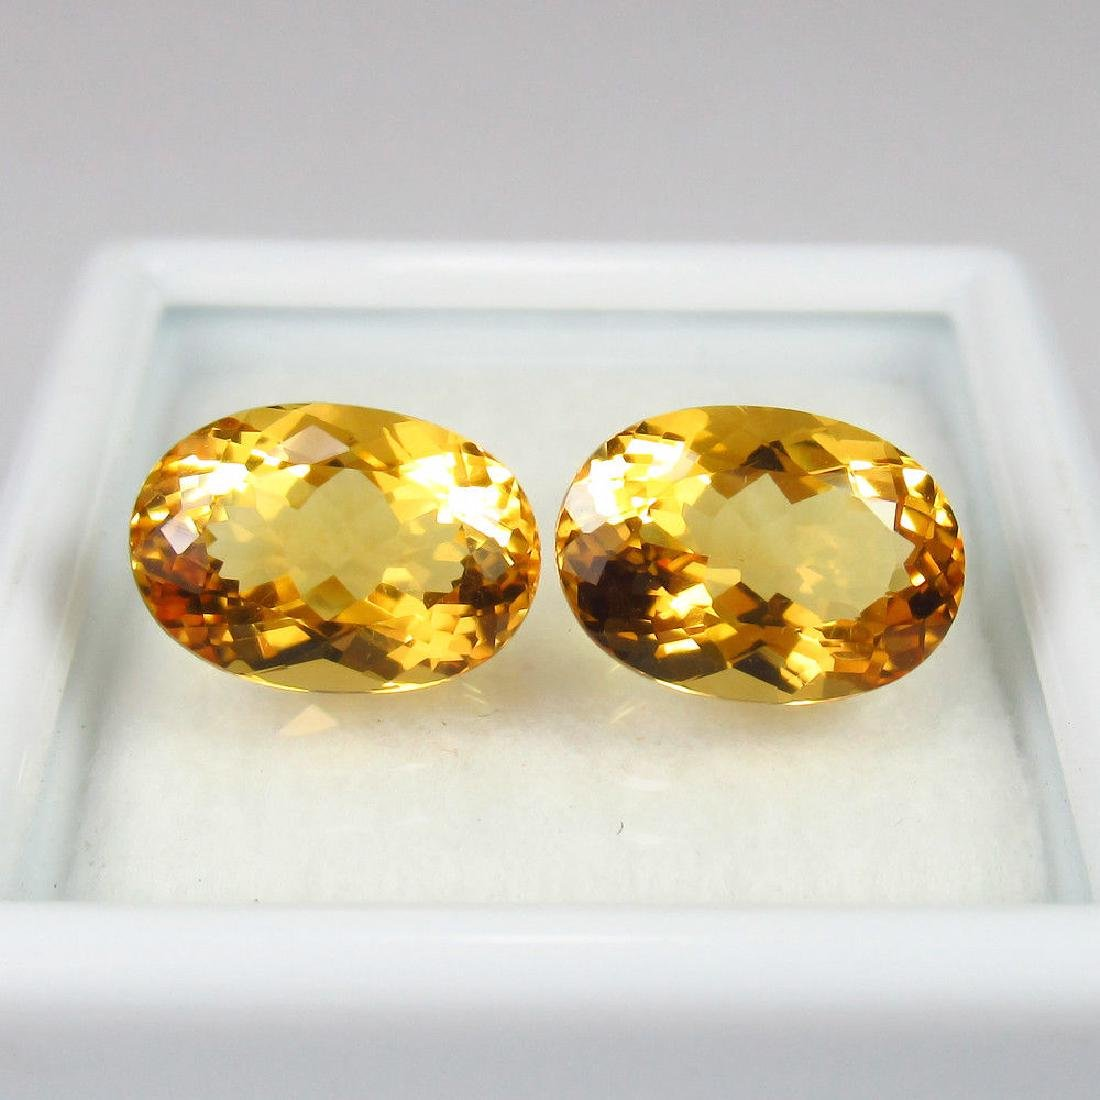 4.20 Ctw Natural Loose Matching Oval Citrine Pair